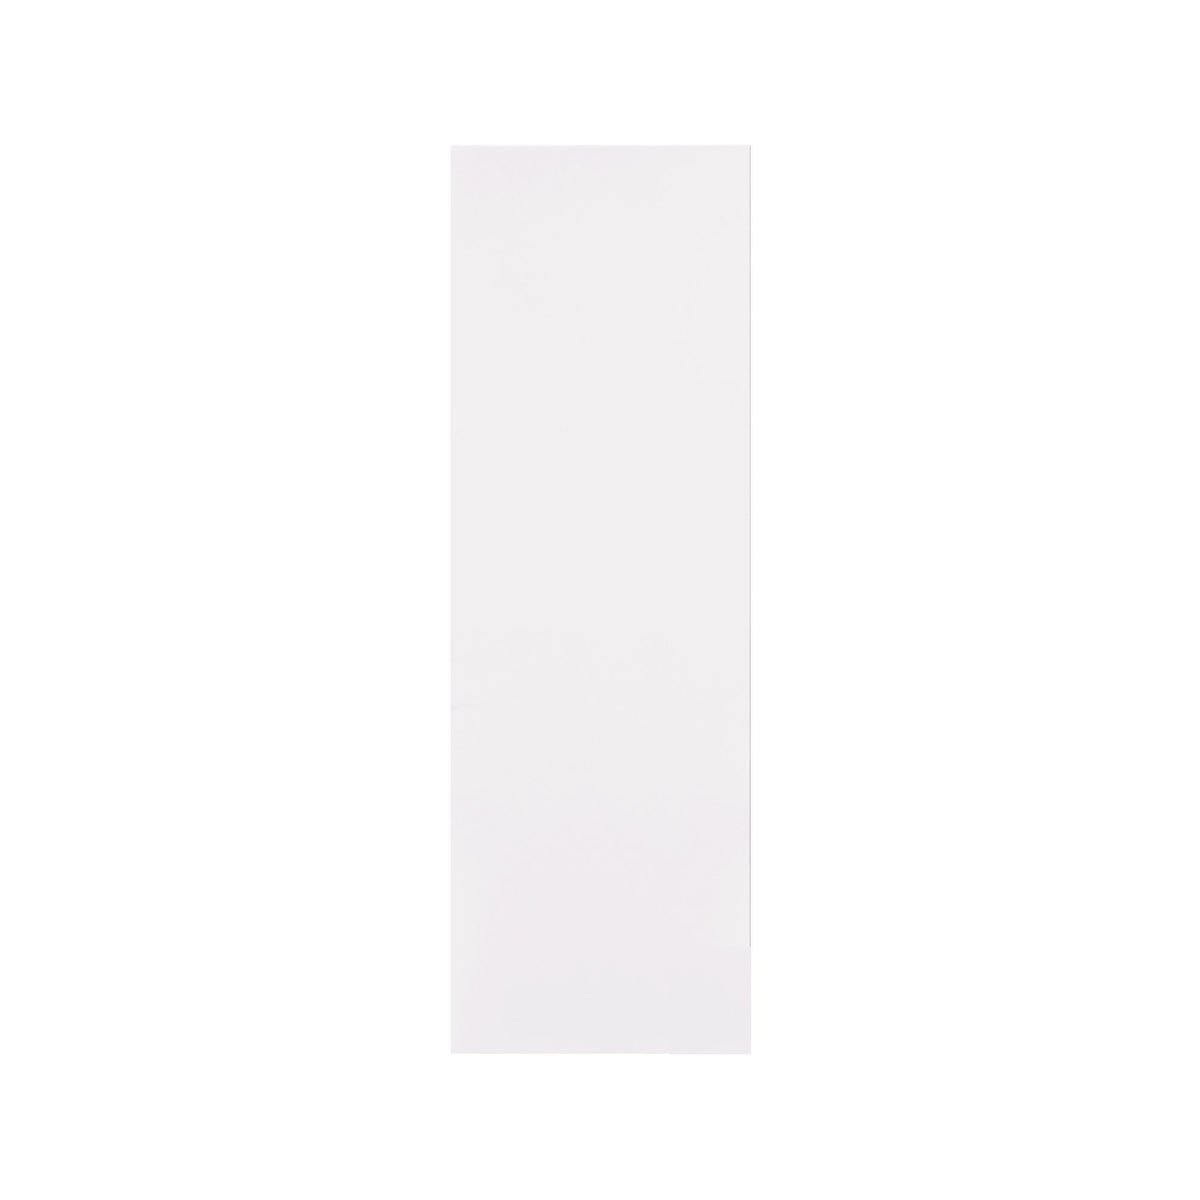 Accessories Skin Panel for Inset Vintage White raised Panel Style Inset Kitchen Cabinets